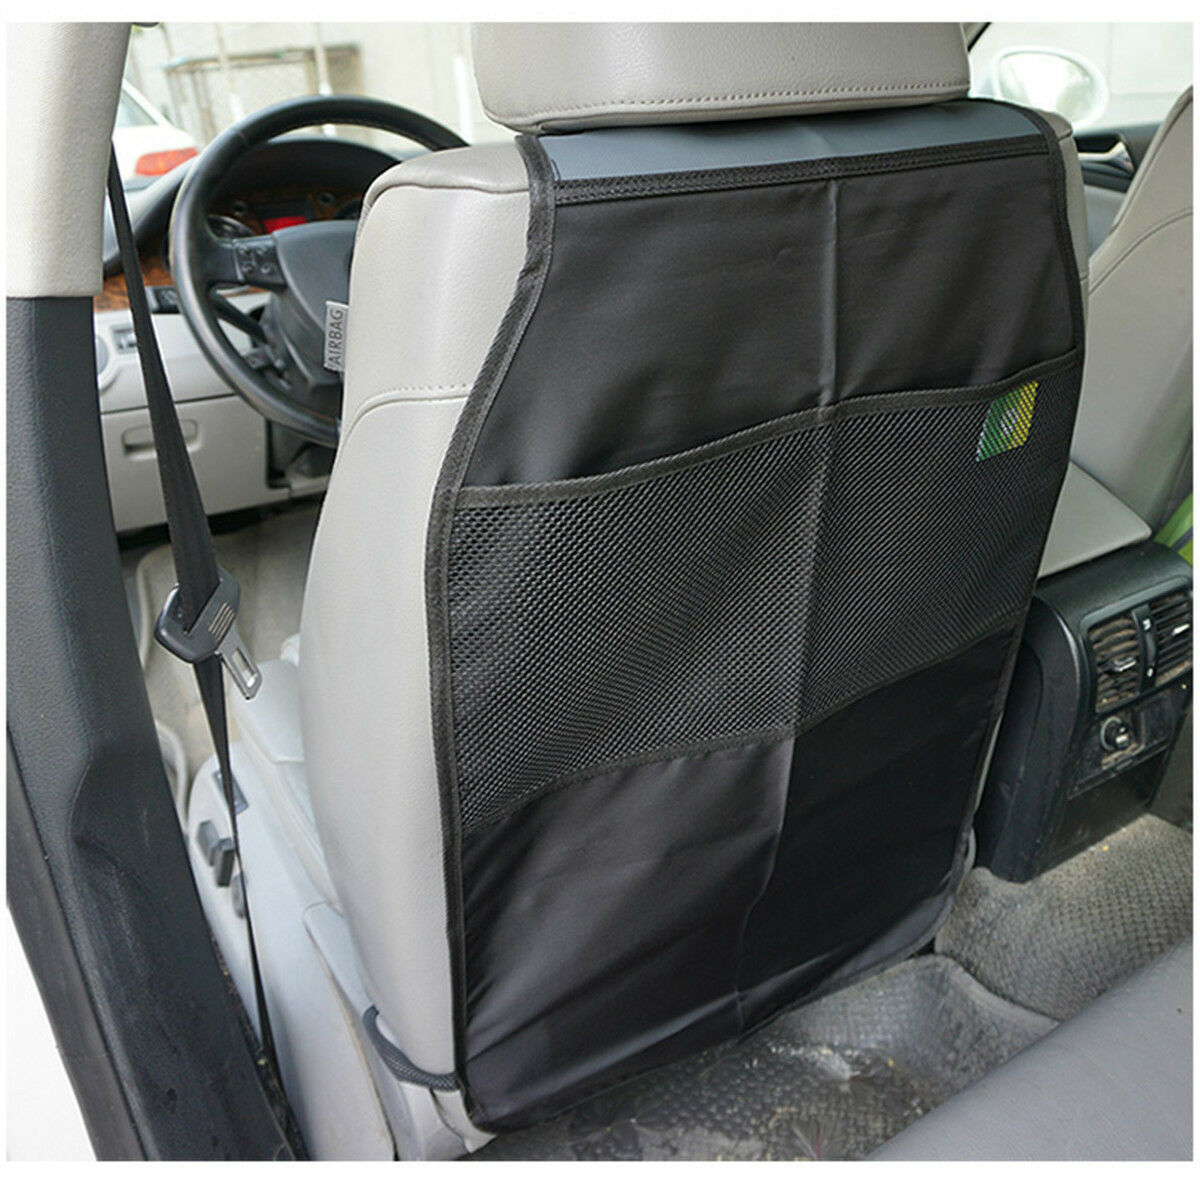 2x universal car seat back protector cover children kick mat anti kicking padded aud. Black Bedroom Furniture Sets. Home Design Ideas